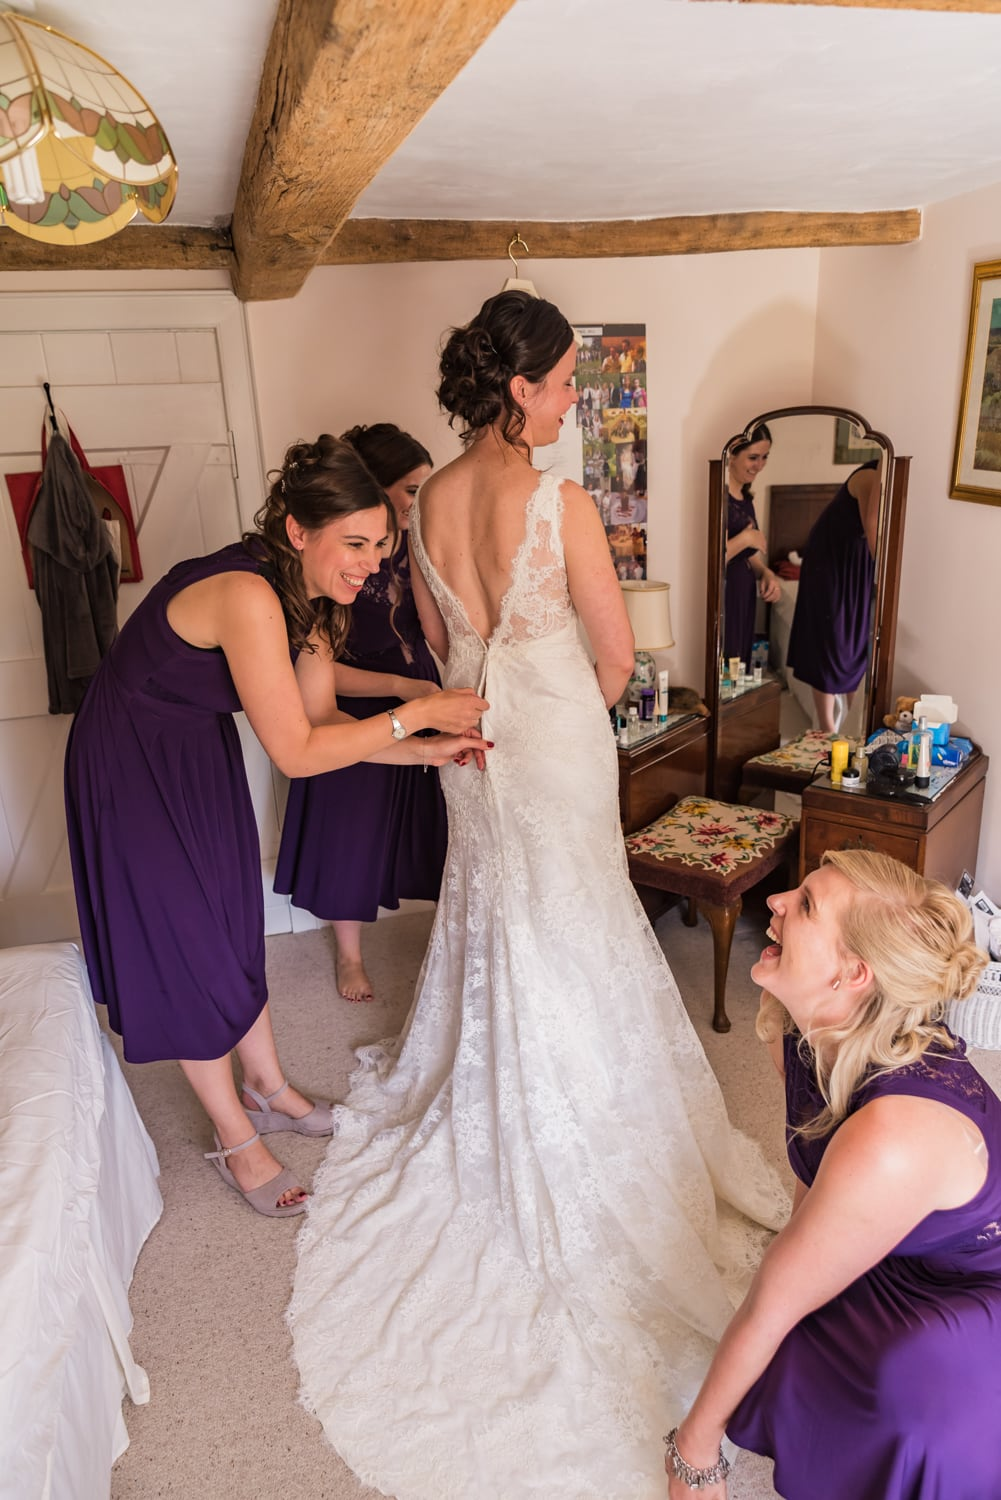 016-bridesmaids-helping-bride.jpg